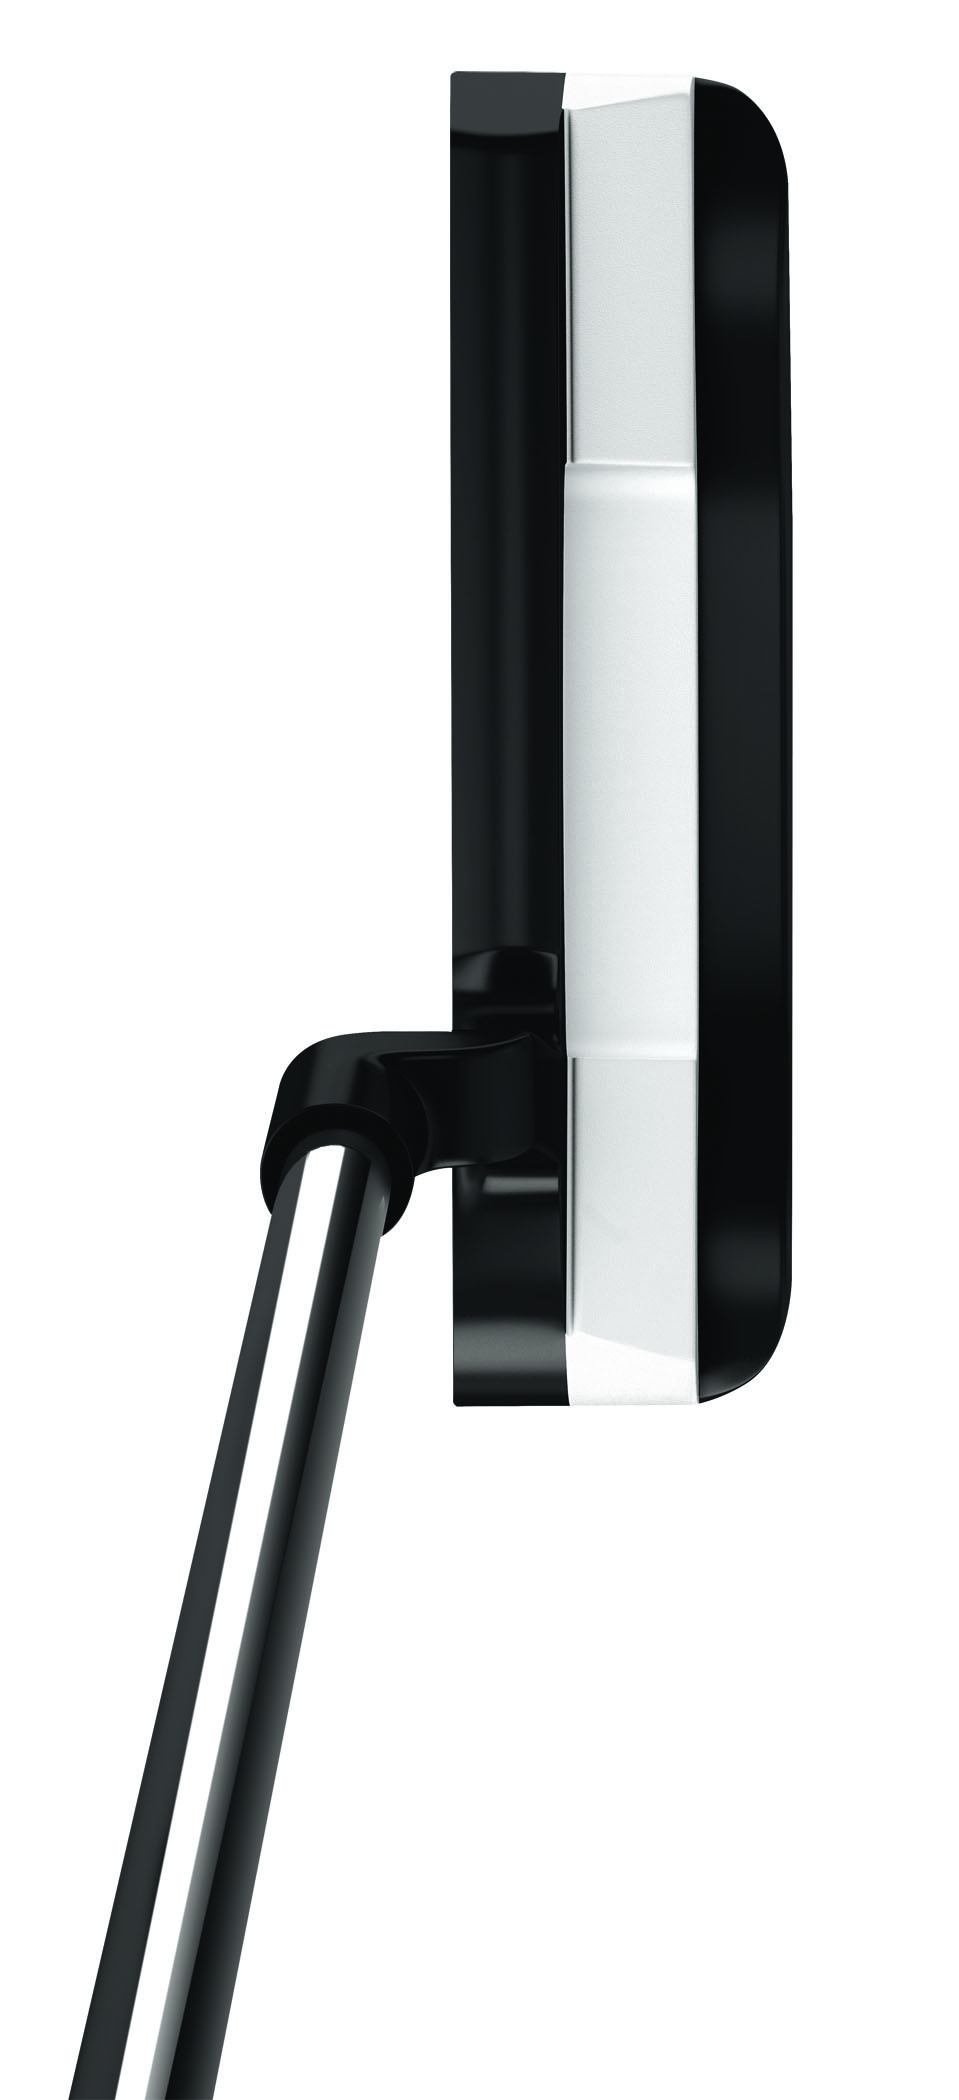 Versa 1 black white black address